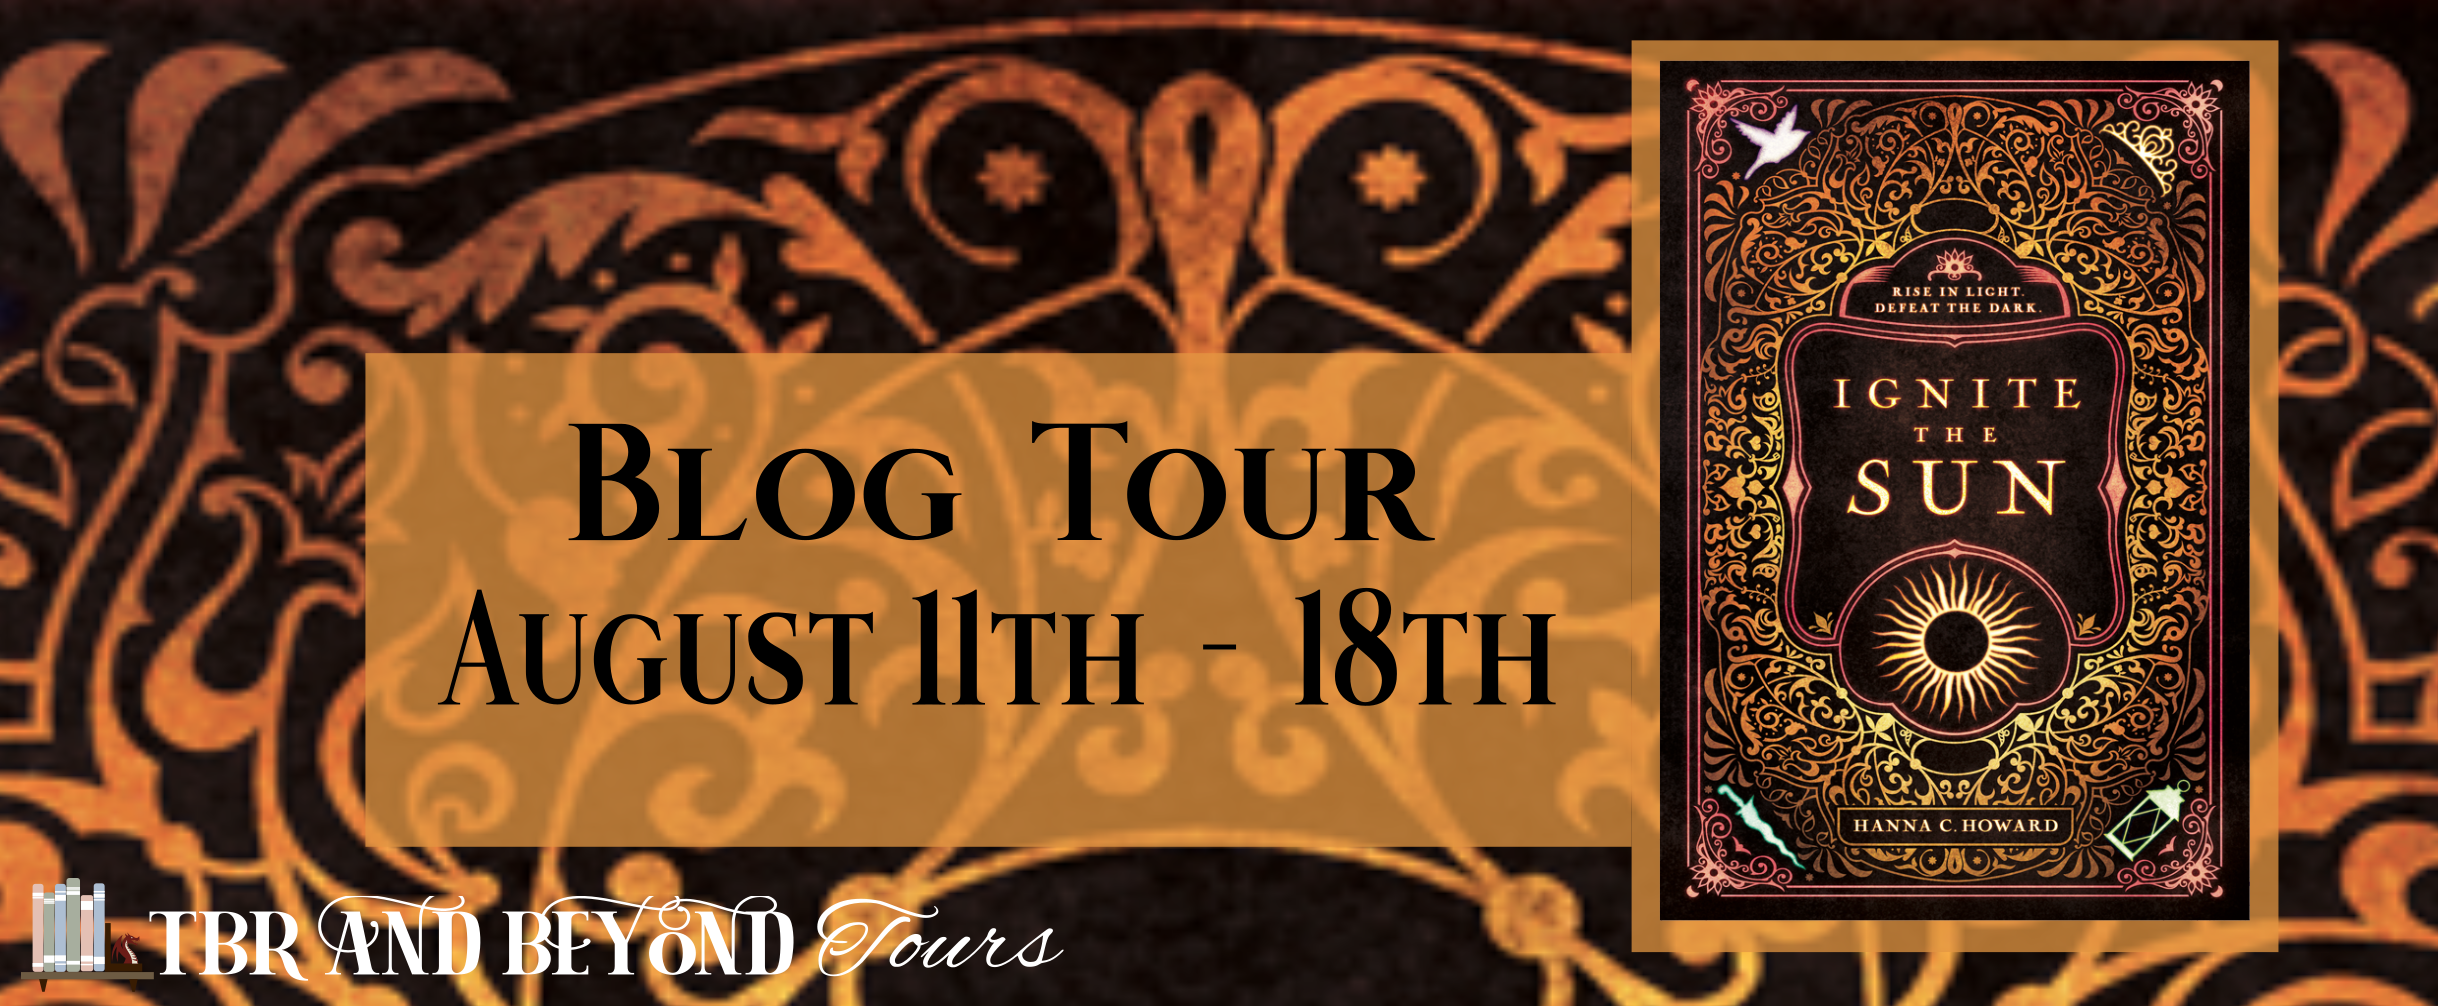 Blog Tour: Ignite the Sun by Hanna C. Howard (Interview + Bookstagram + Giveaway!!!)